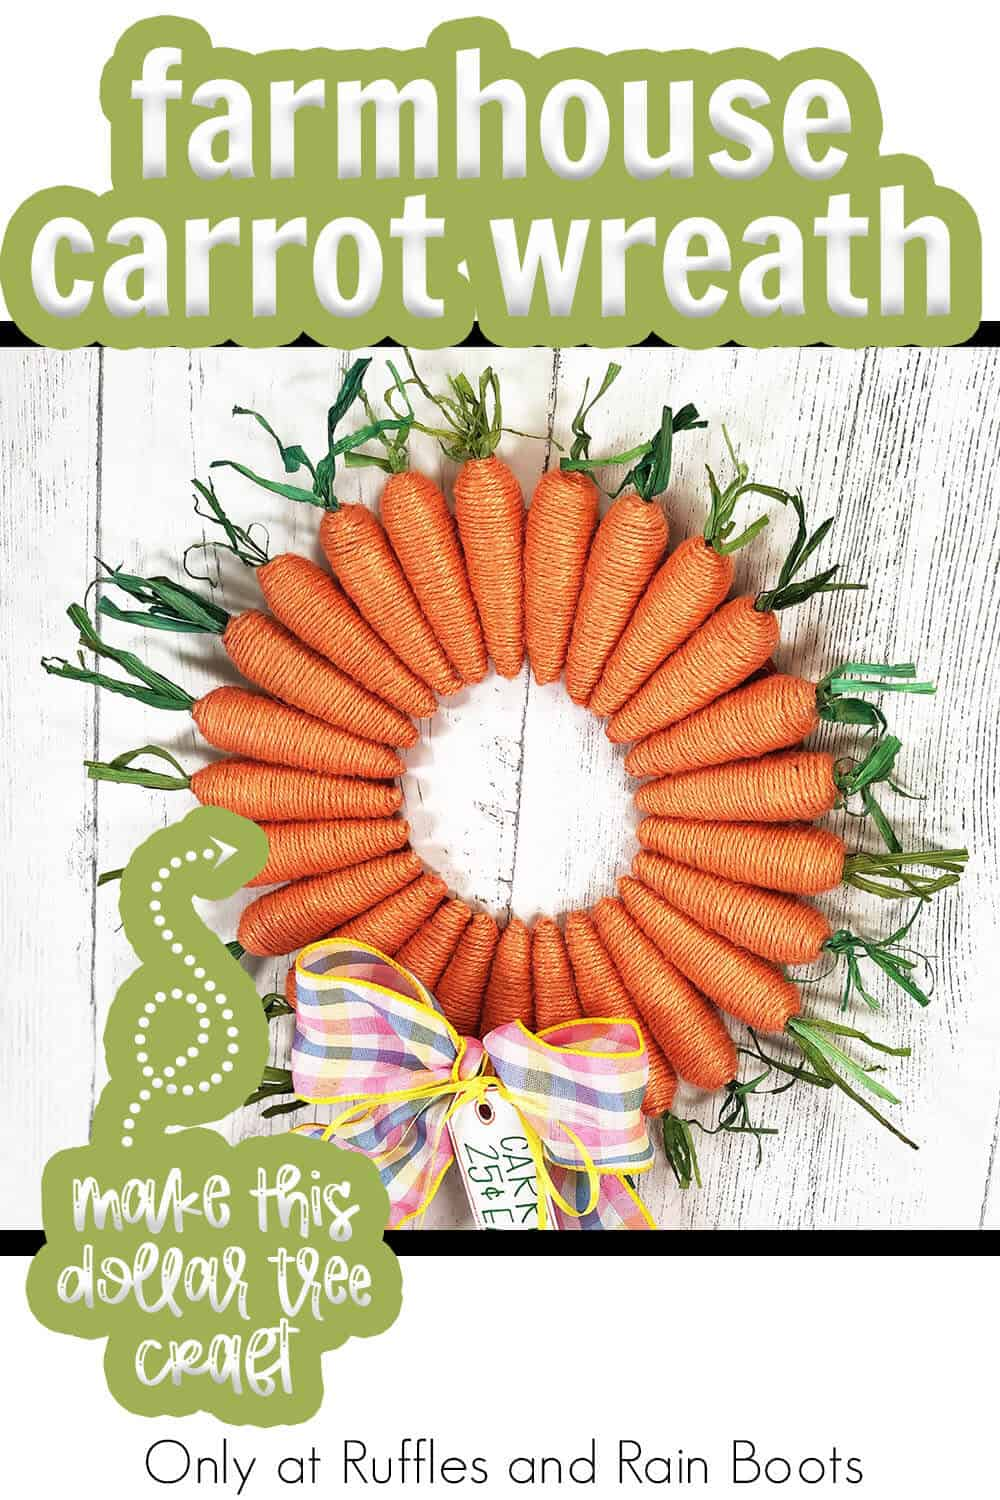 rustic farmhouse wreath for easter with text which reads farmhouse carrot wreath make this dollar tree craft